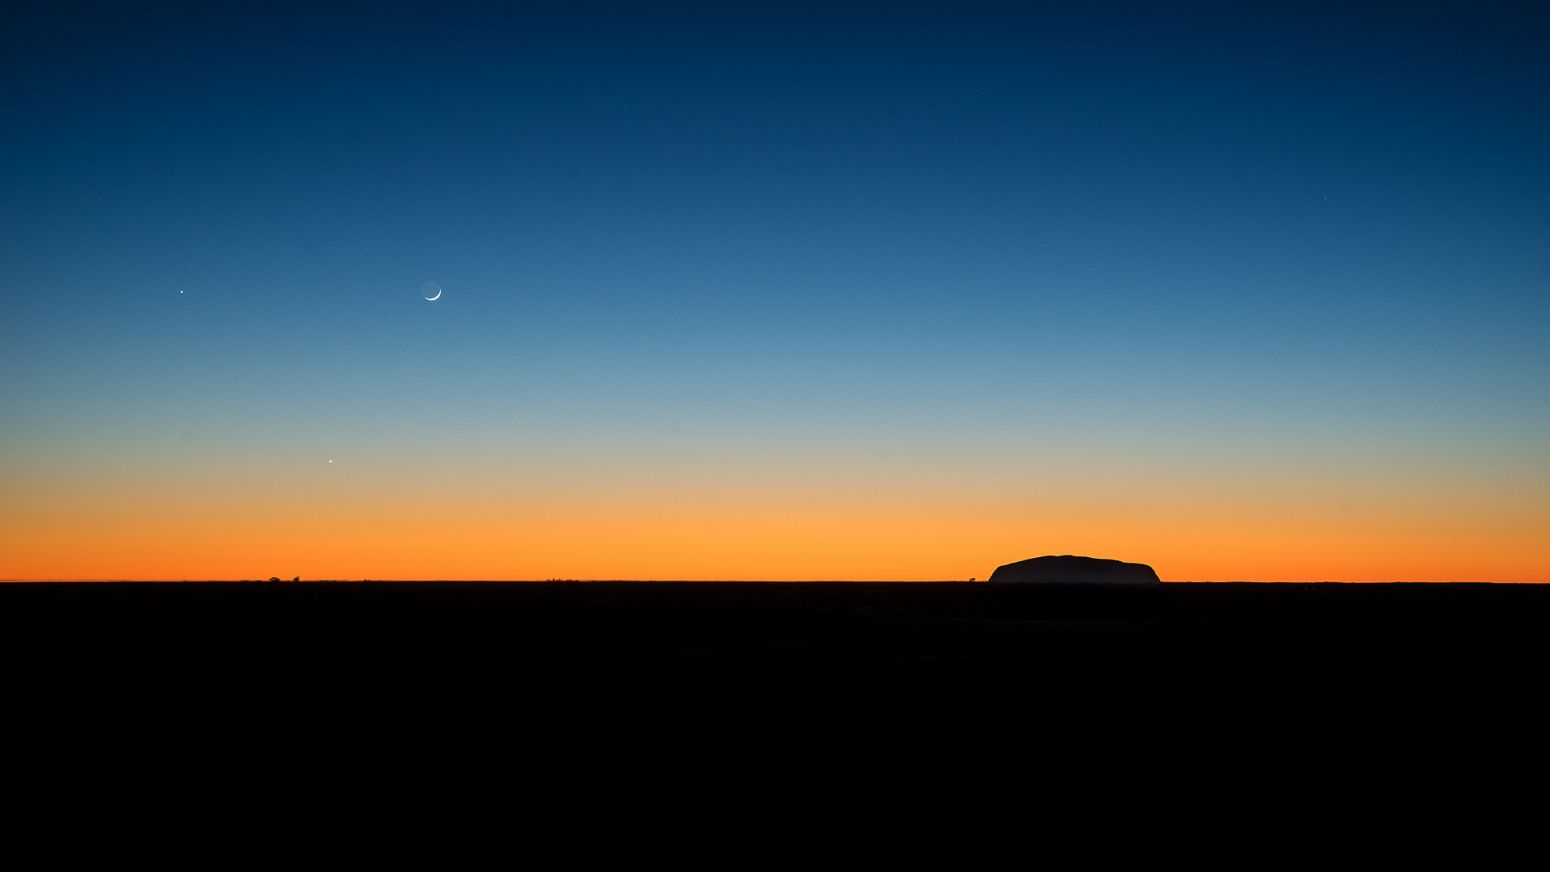 Uluru as seen from Kata Tjuta at sunrise, Northern Territory, Australia